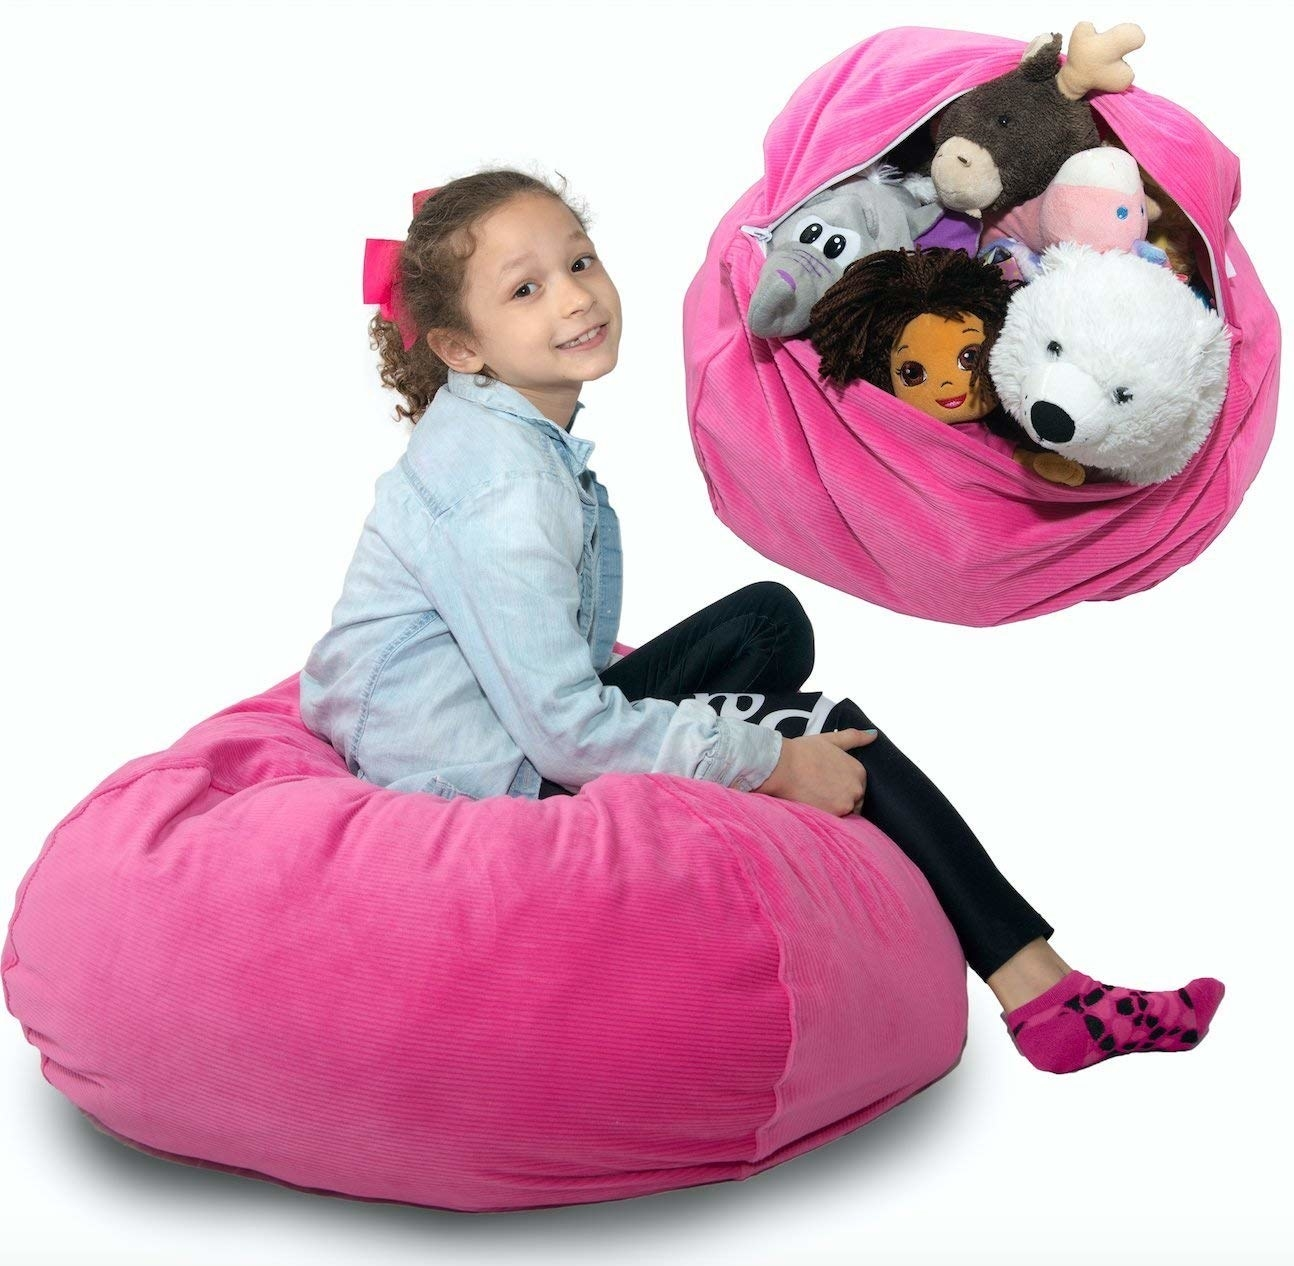 Child model sitting on the large beanbag chair, which can fit dozens of stuffed animals depending on the size